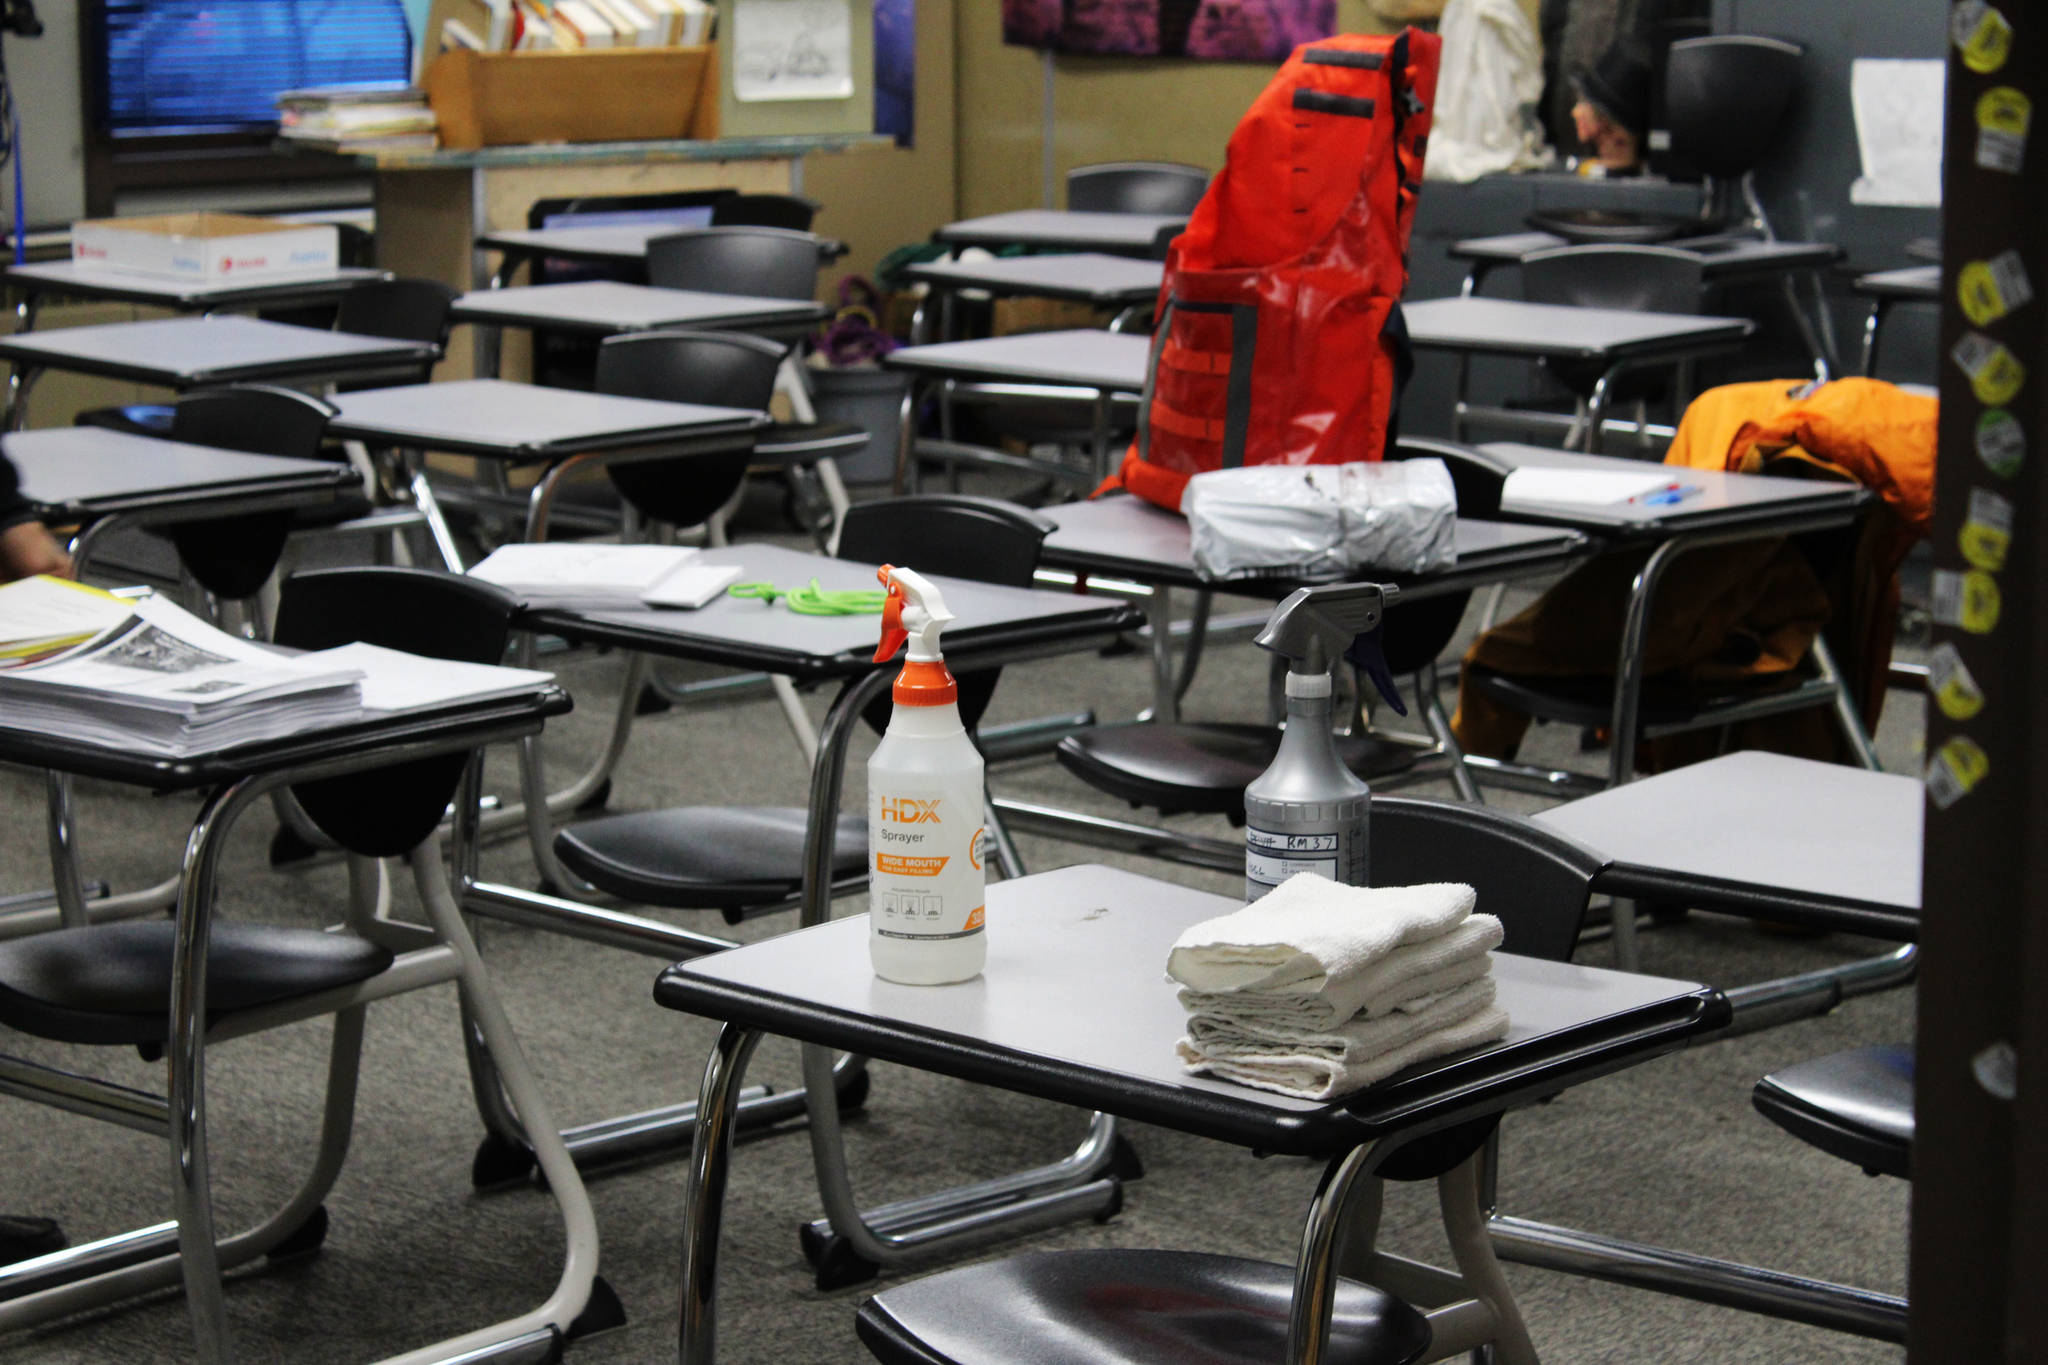 Sanitization equipment is seen inside of a classroom at Kenai Middle School on Friday, Jan. 8 in Kenai, Alaska. (Ashlyn O'Hara/Peninsula Clarion)